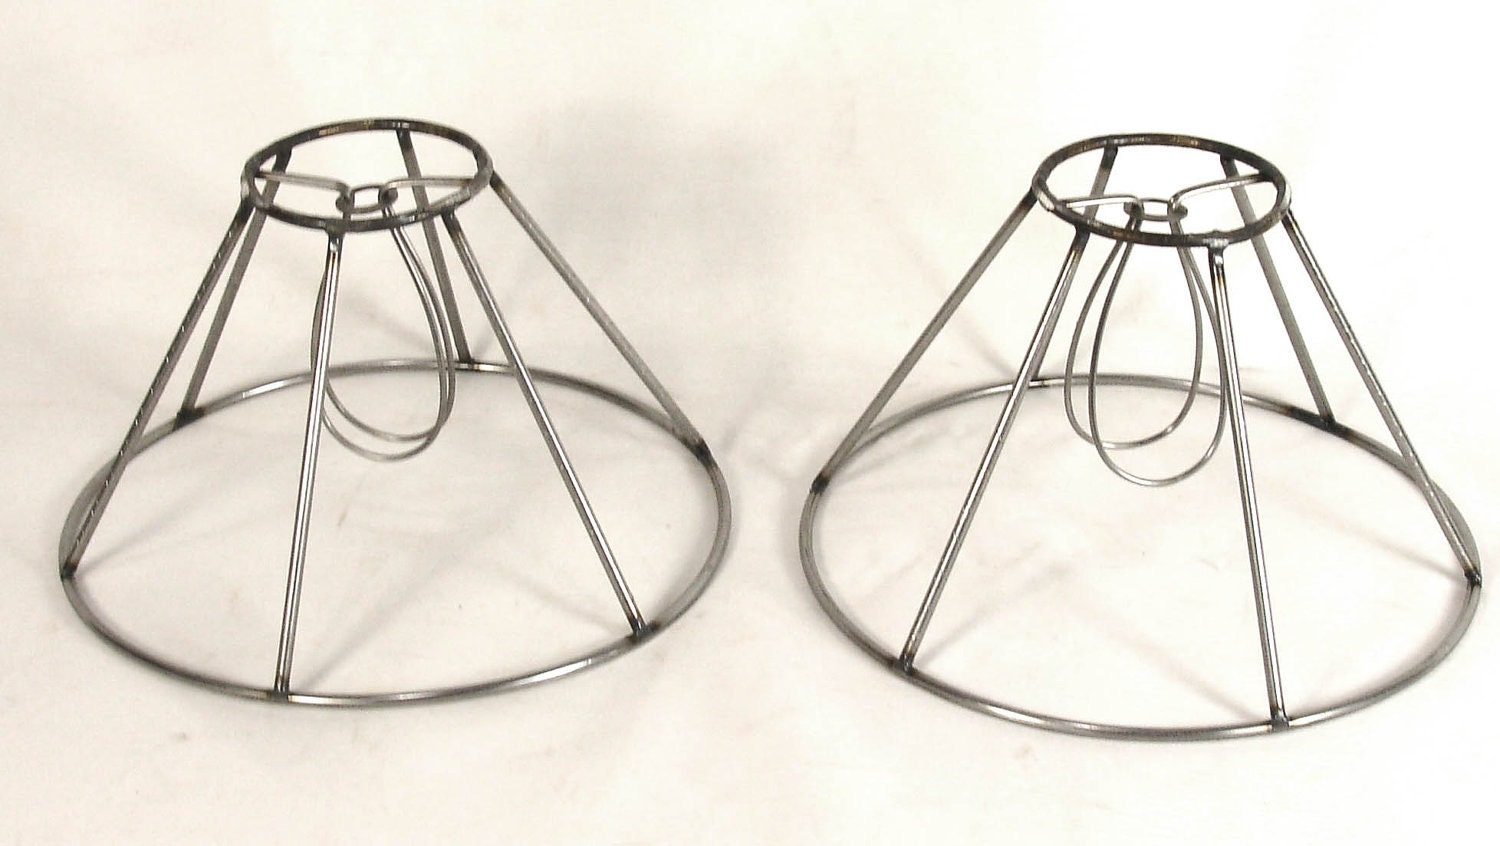 2 Lamp Shade Frames For Small Table Or Chandelier By